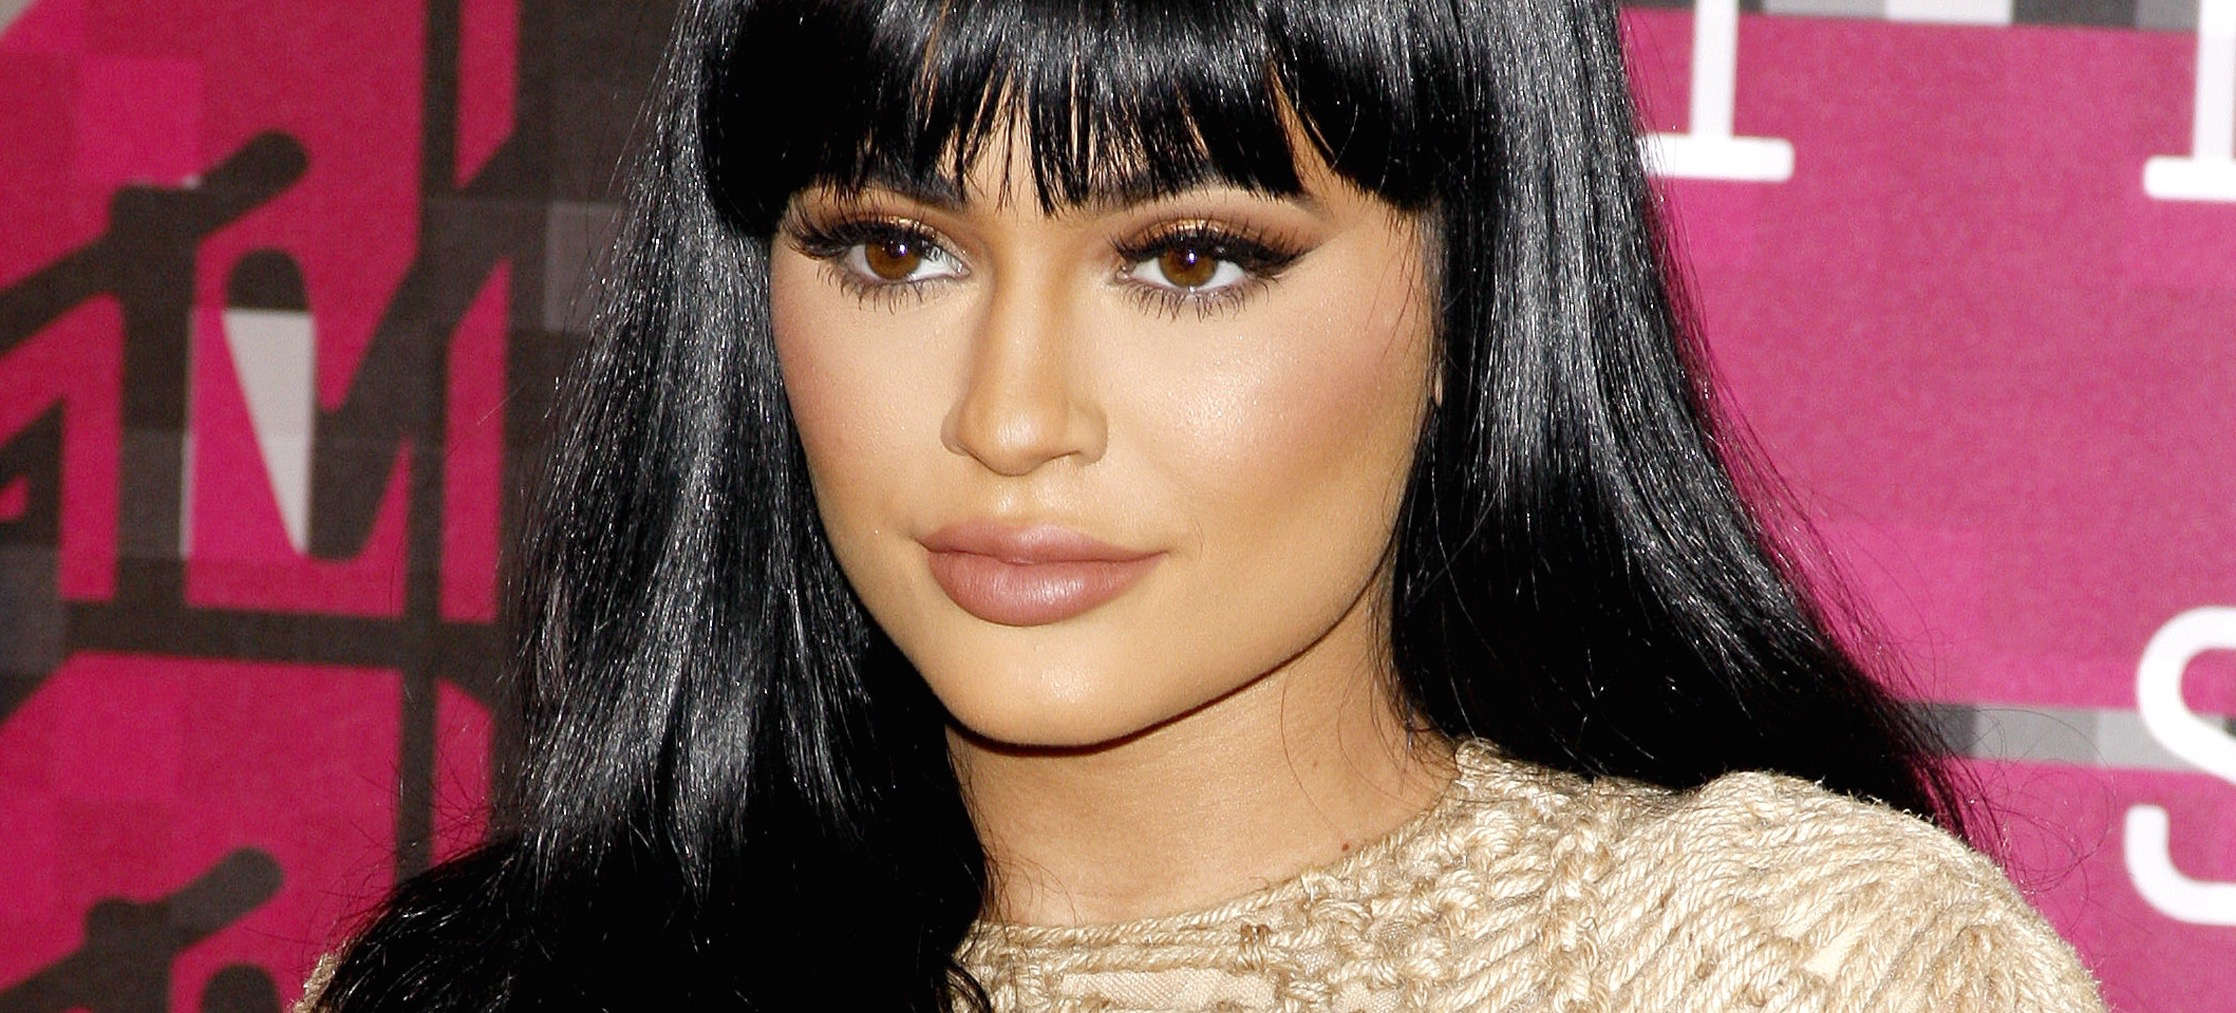 Kylie Jenner Tells All: Favorite Beauty Products, Doctors, Diet, and More